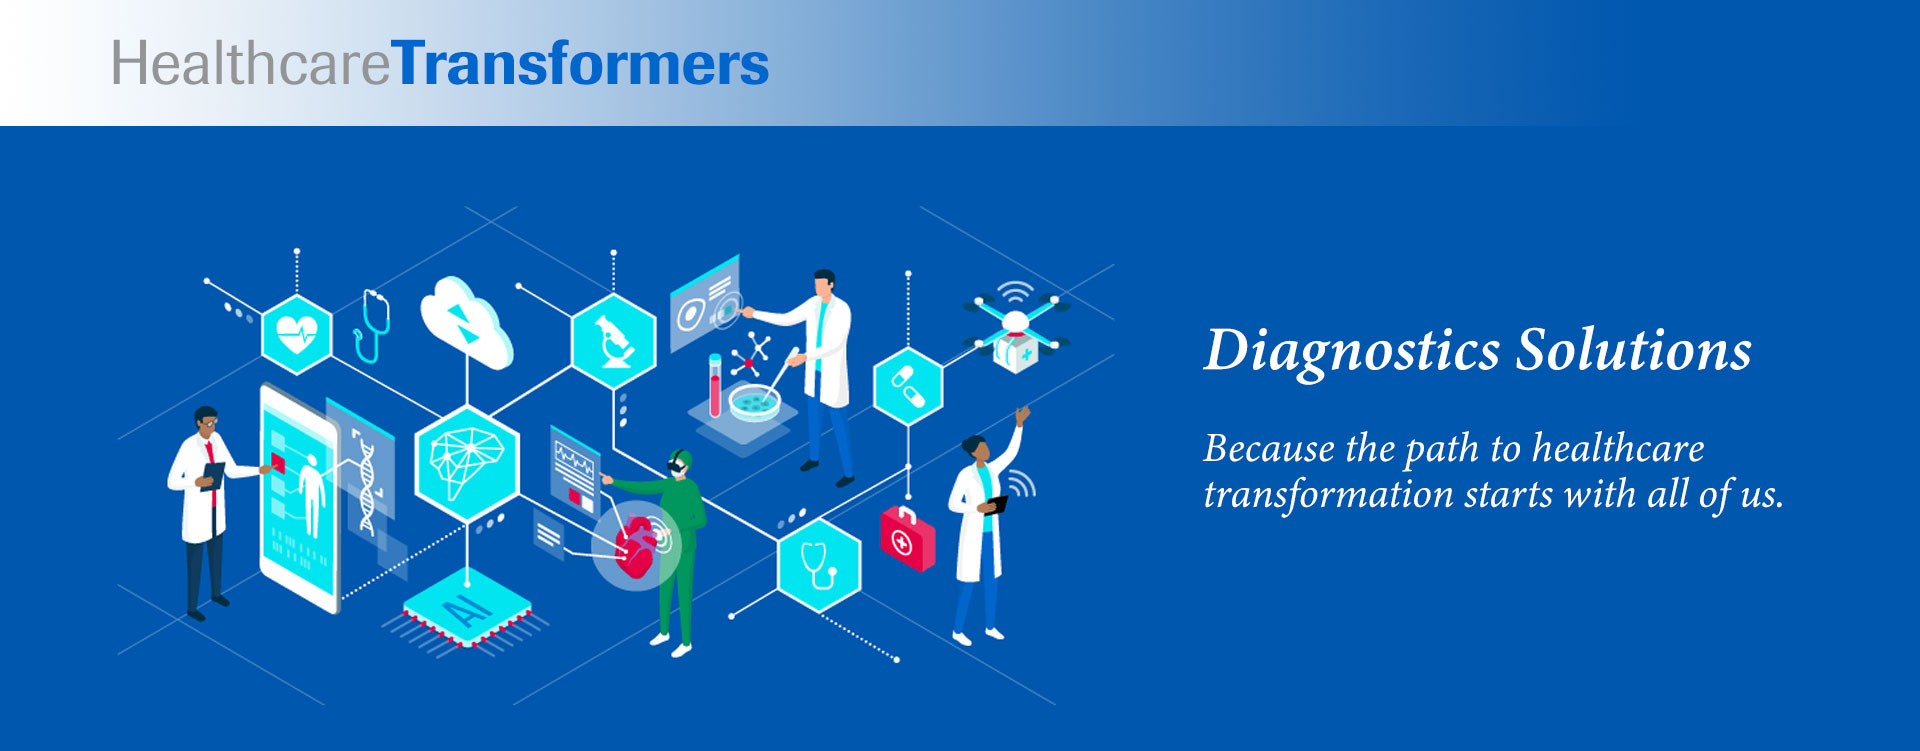 Roche offers the industry's broadest range of in vitro diagnostic solutions.